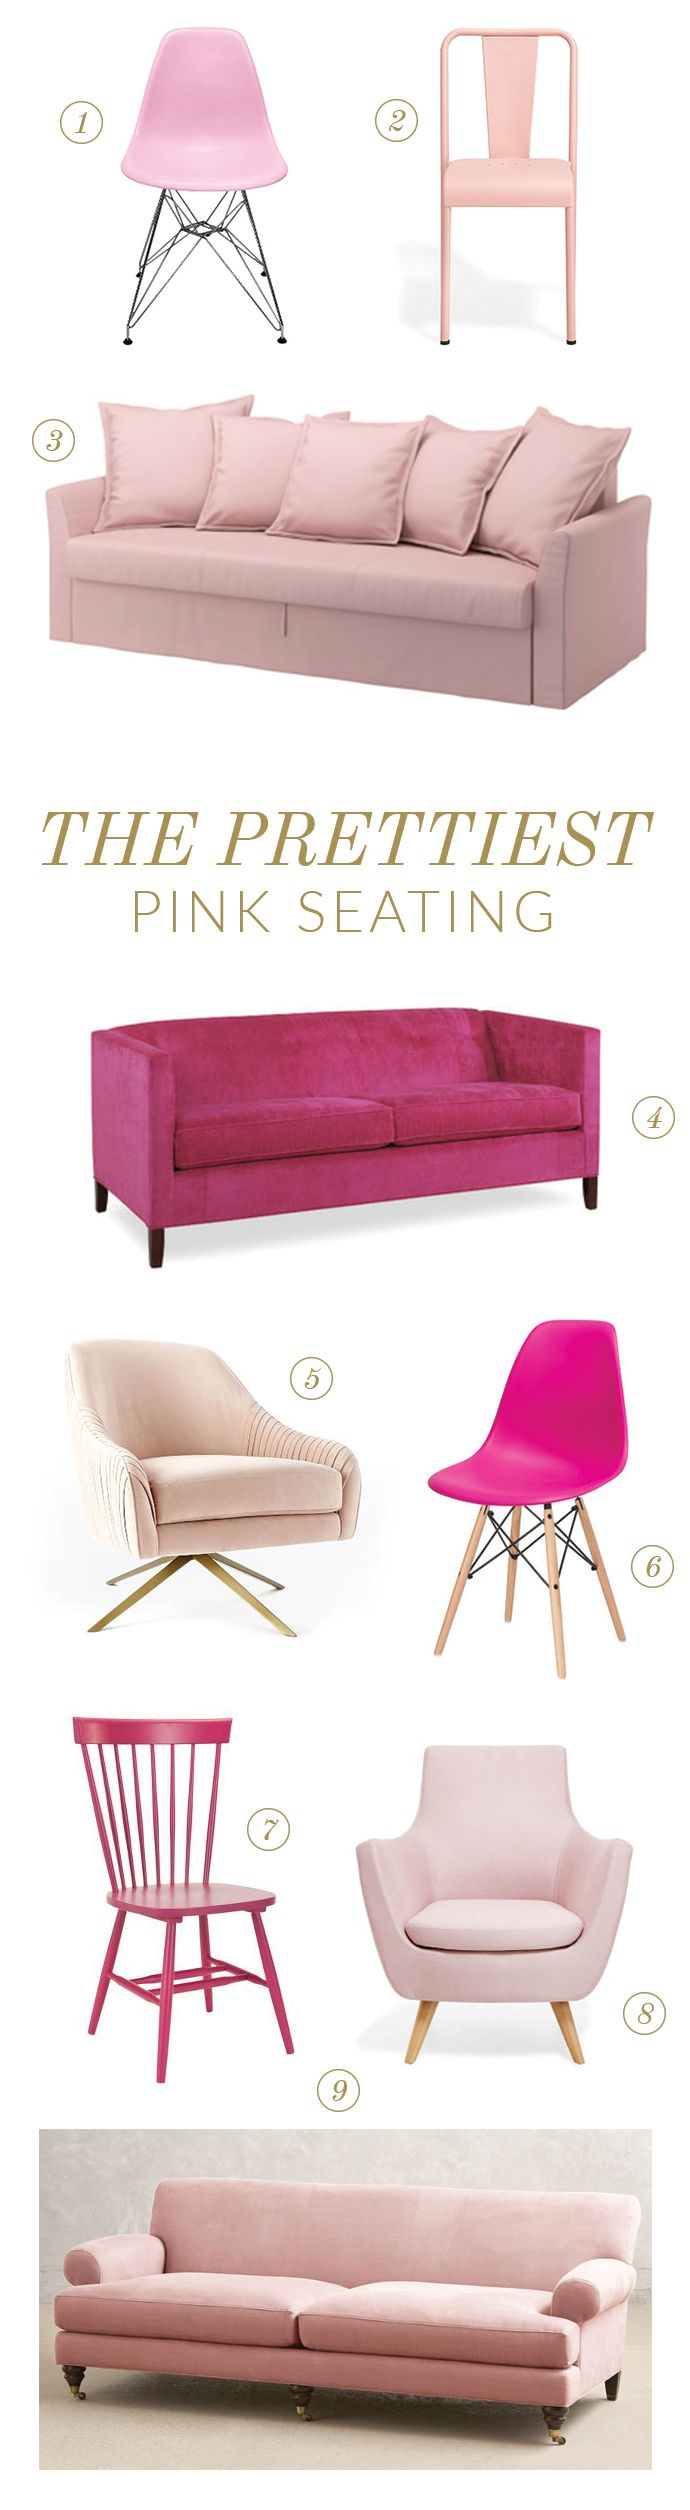 Best 25+ Pink chairs ideas on Pinterest | Pink velvet 2, Velvet ...